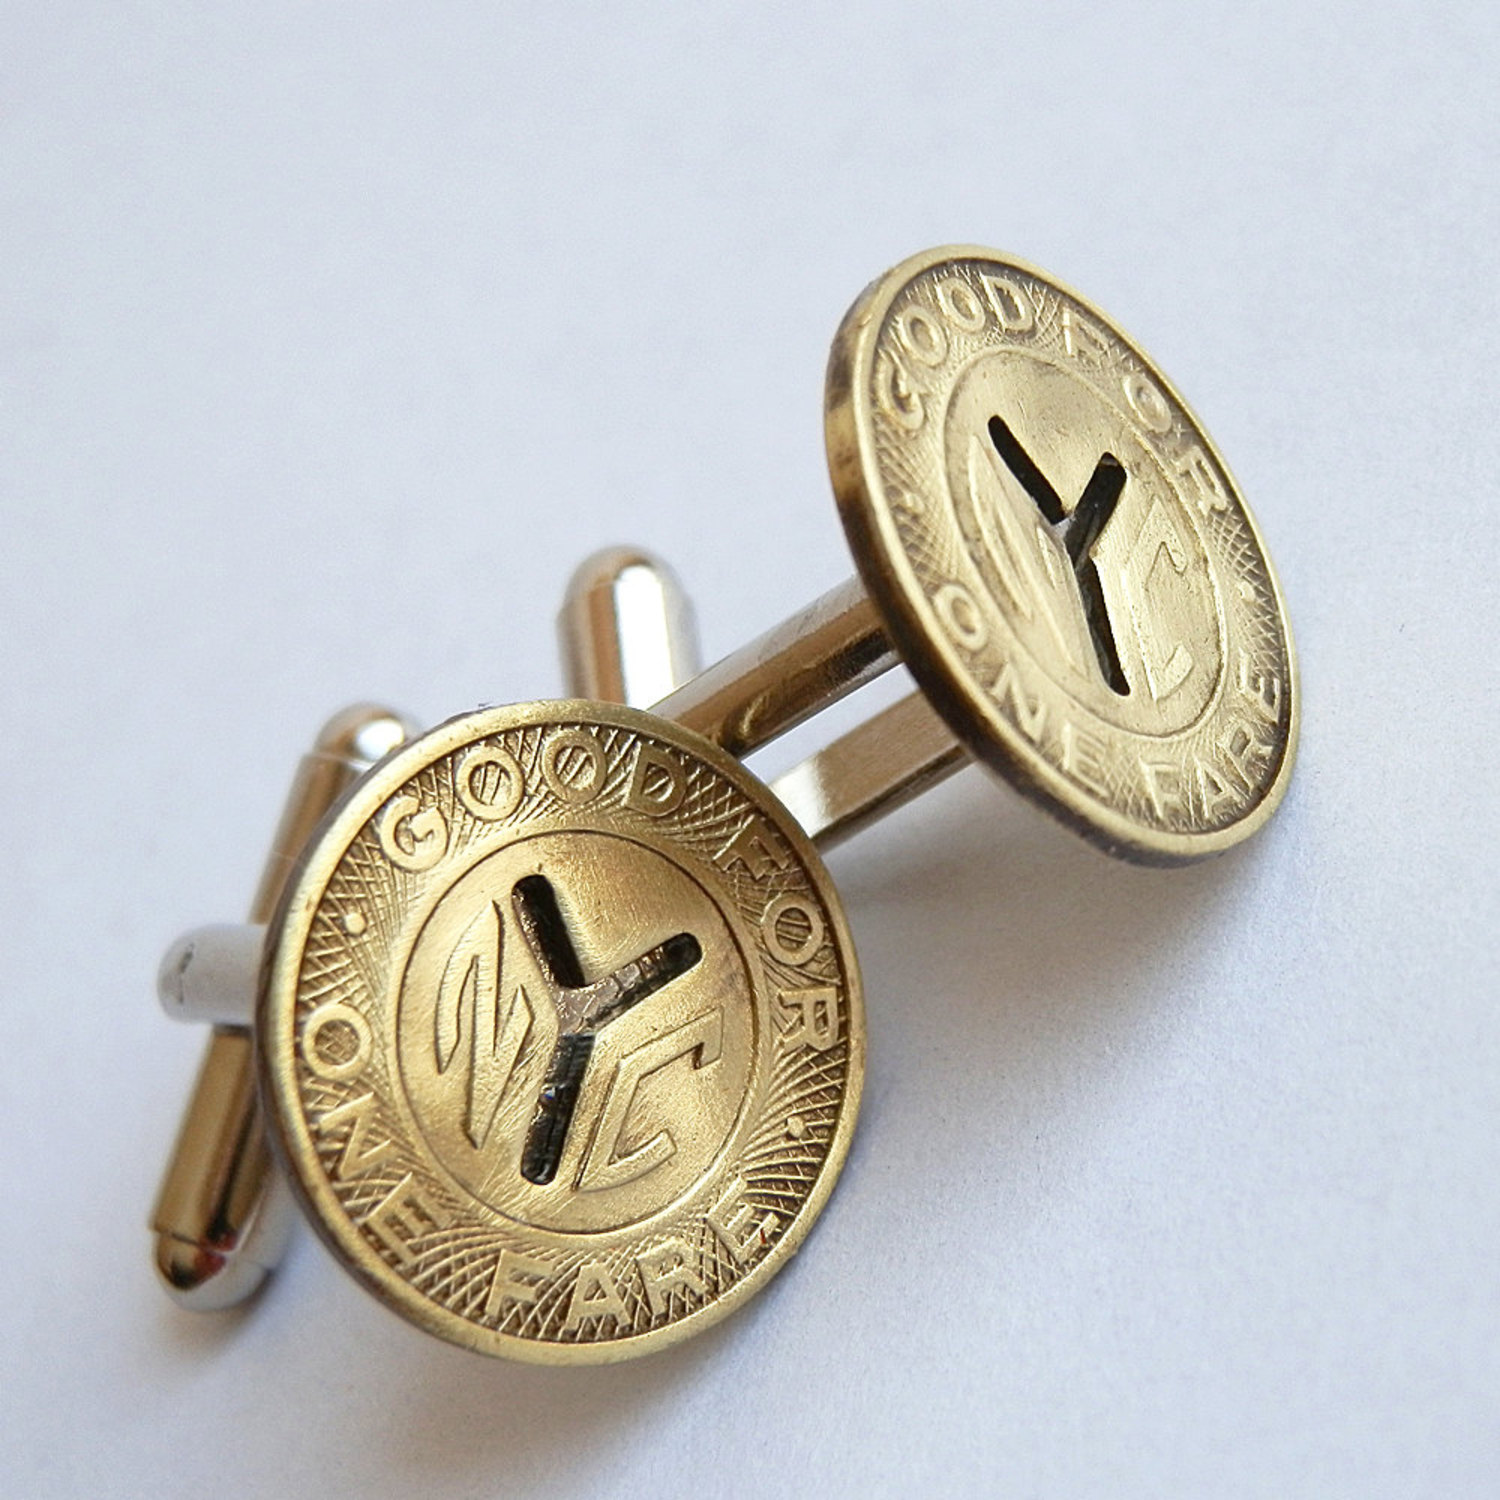 Vintage NYC Subway Token Cufflinks